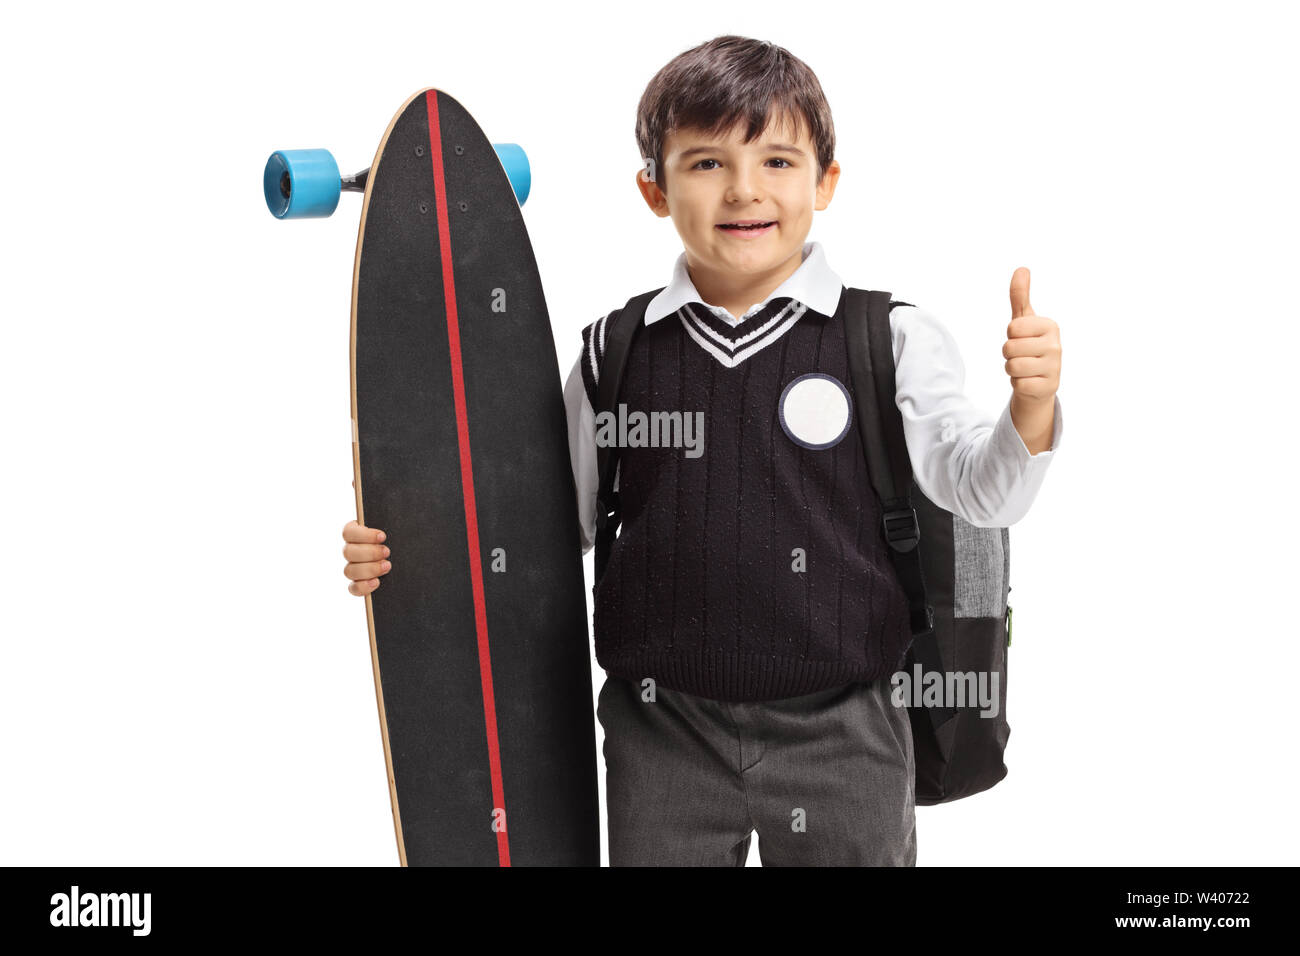 Little schoolboy with a longboard making a thumb up sign isolated on white background - Stock Image